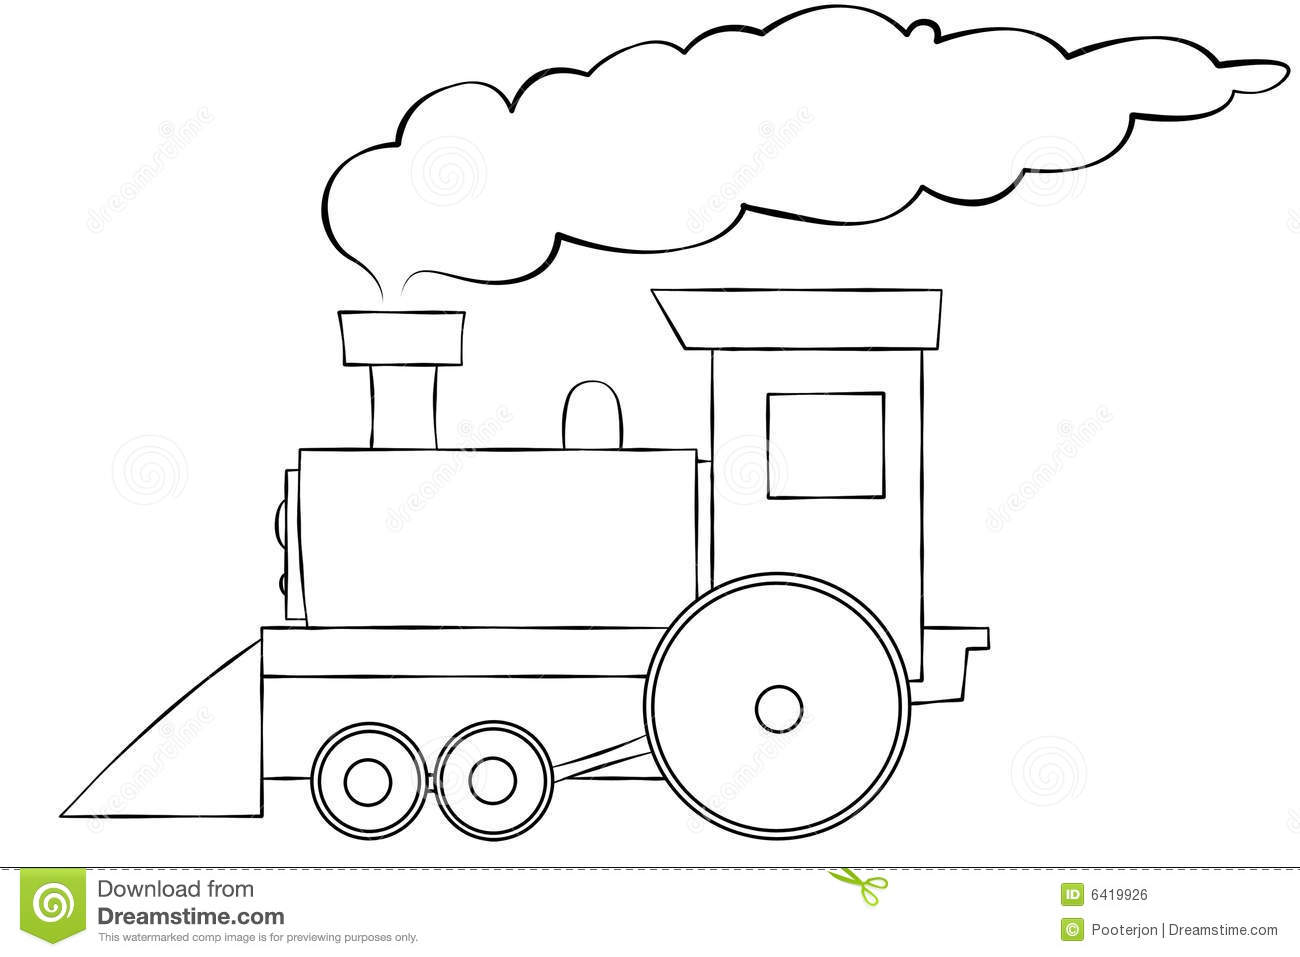 Train smoke cloud clipart.